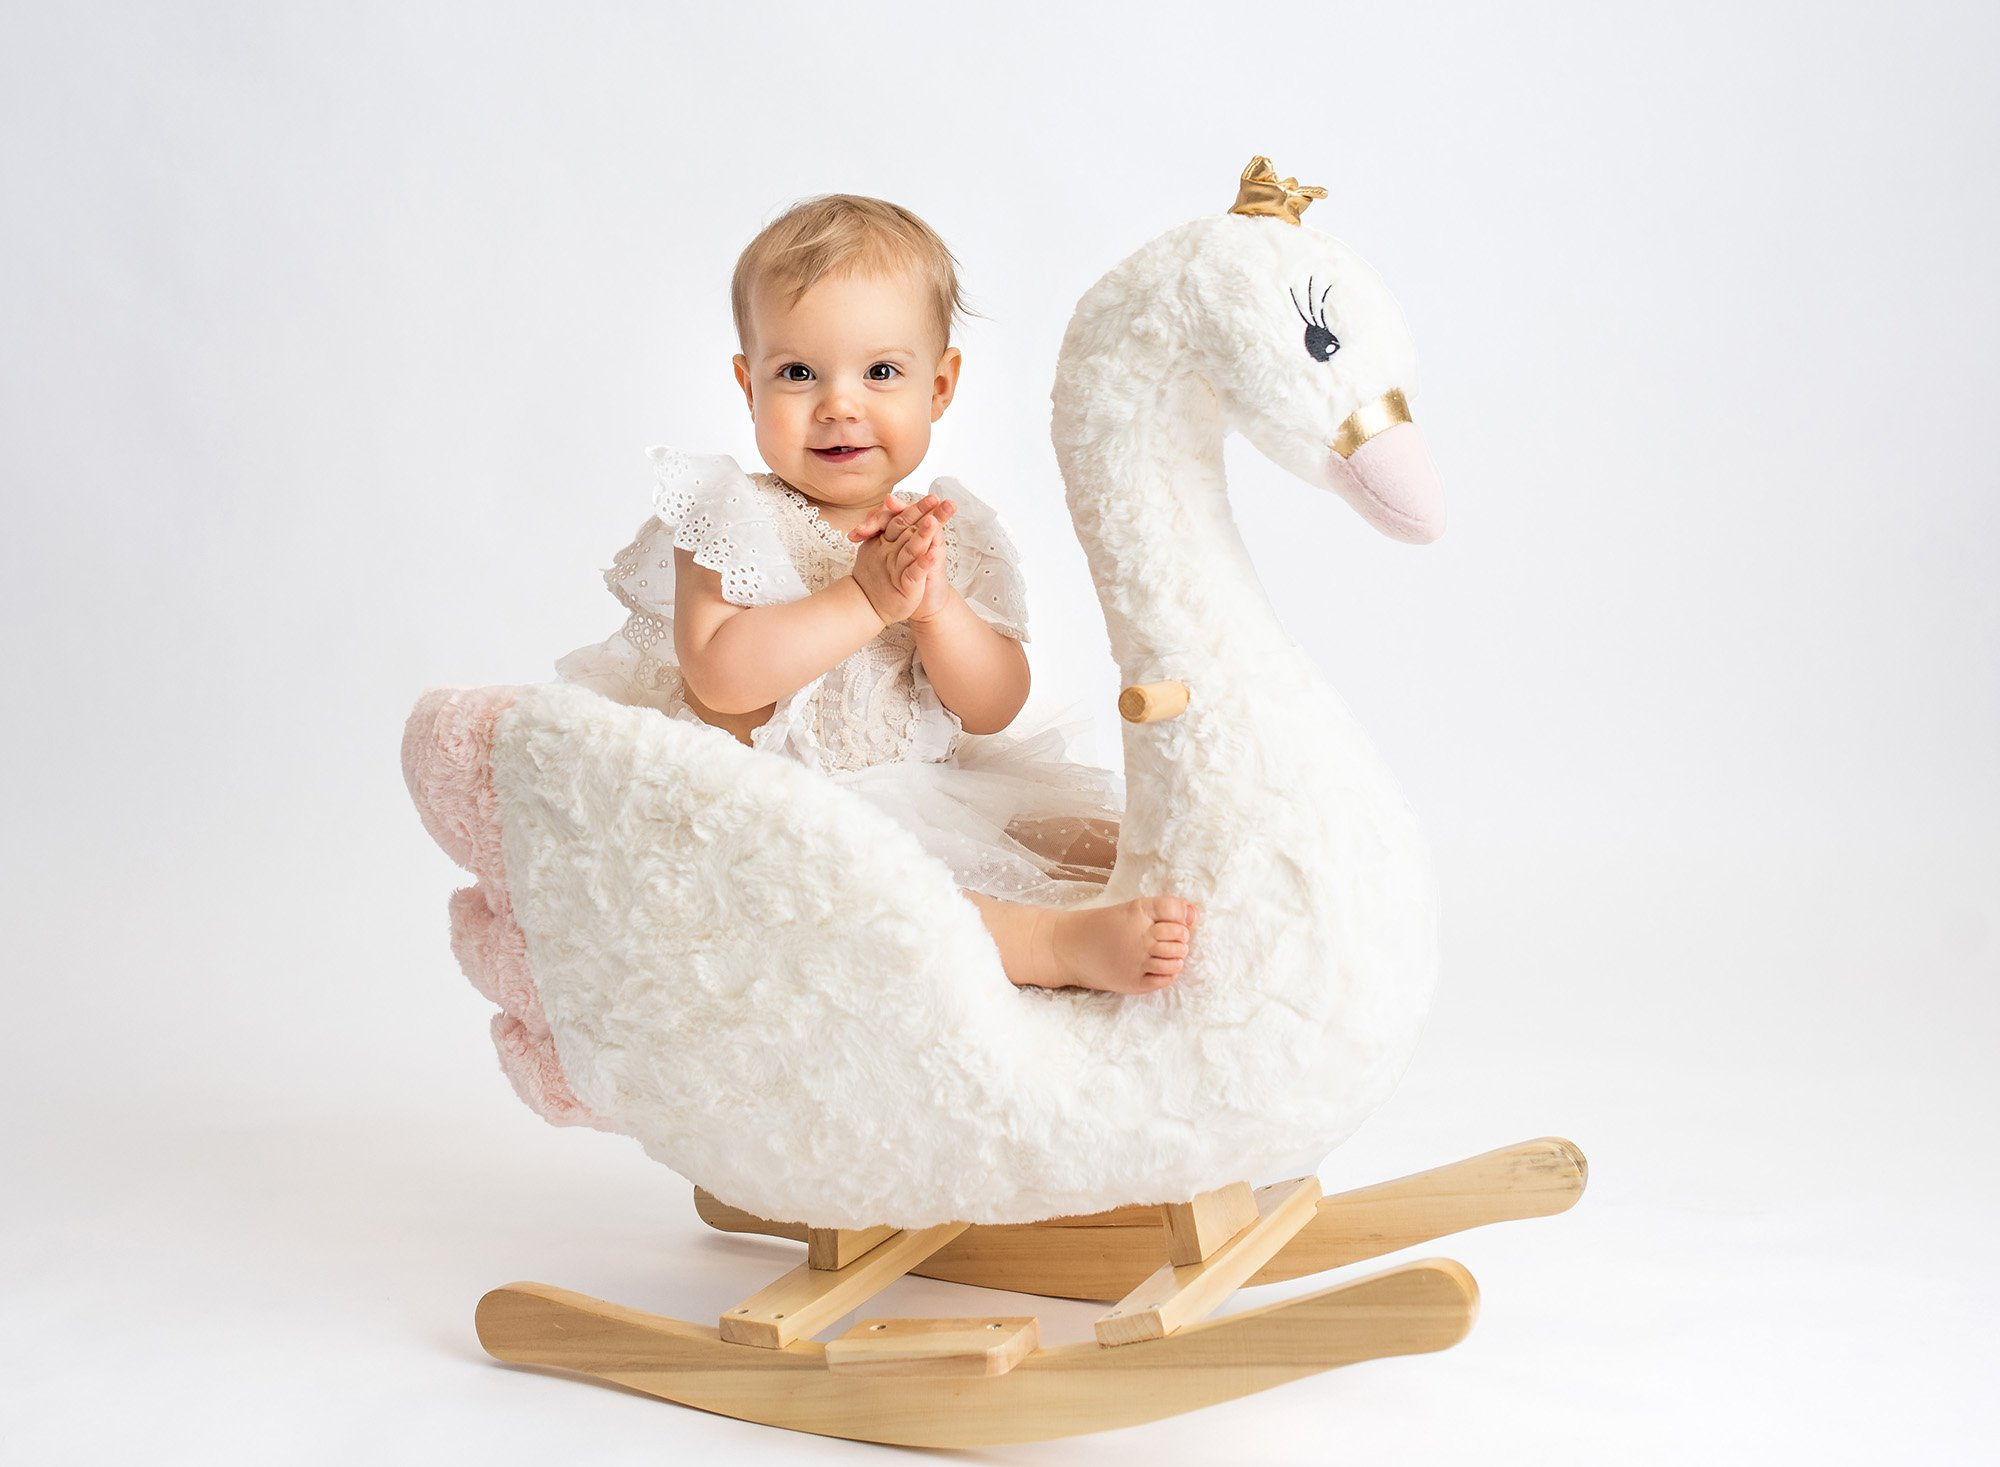 1 year baby photoshoot one year old girl wearing white lace dress sitting on swan rocker with white backdrop